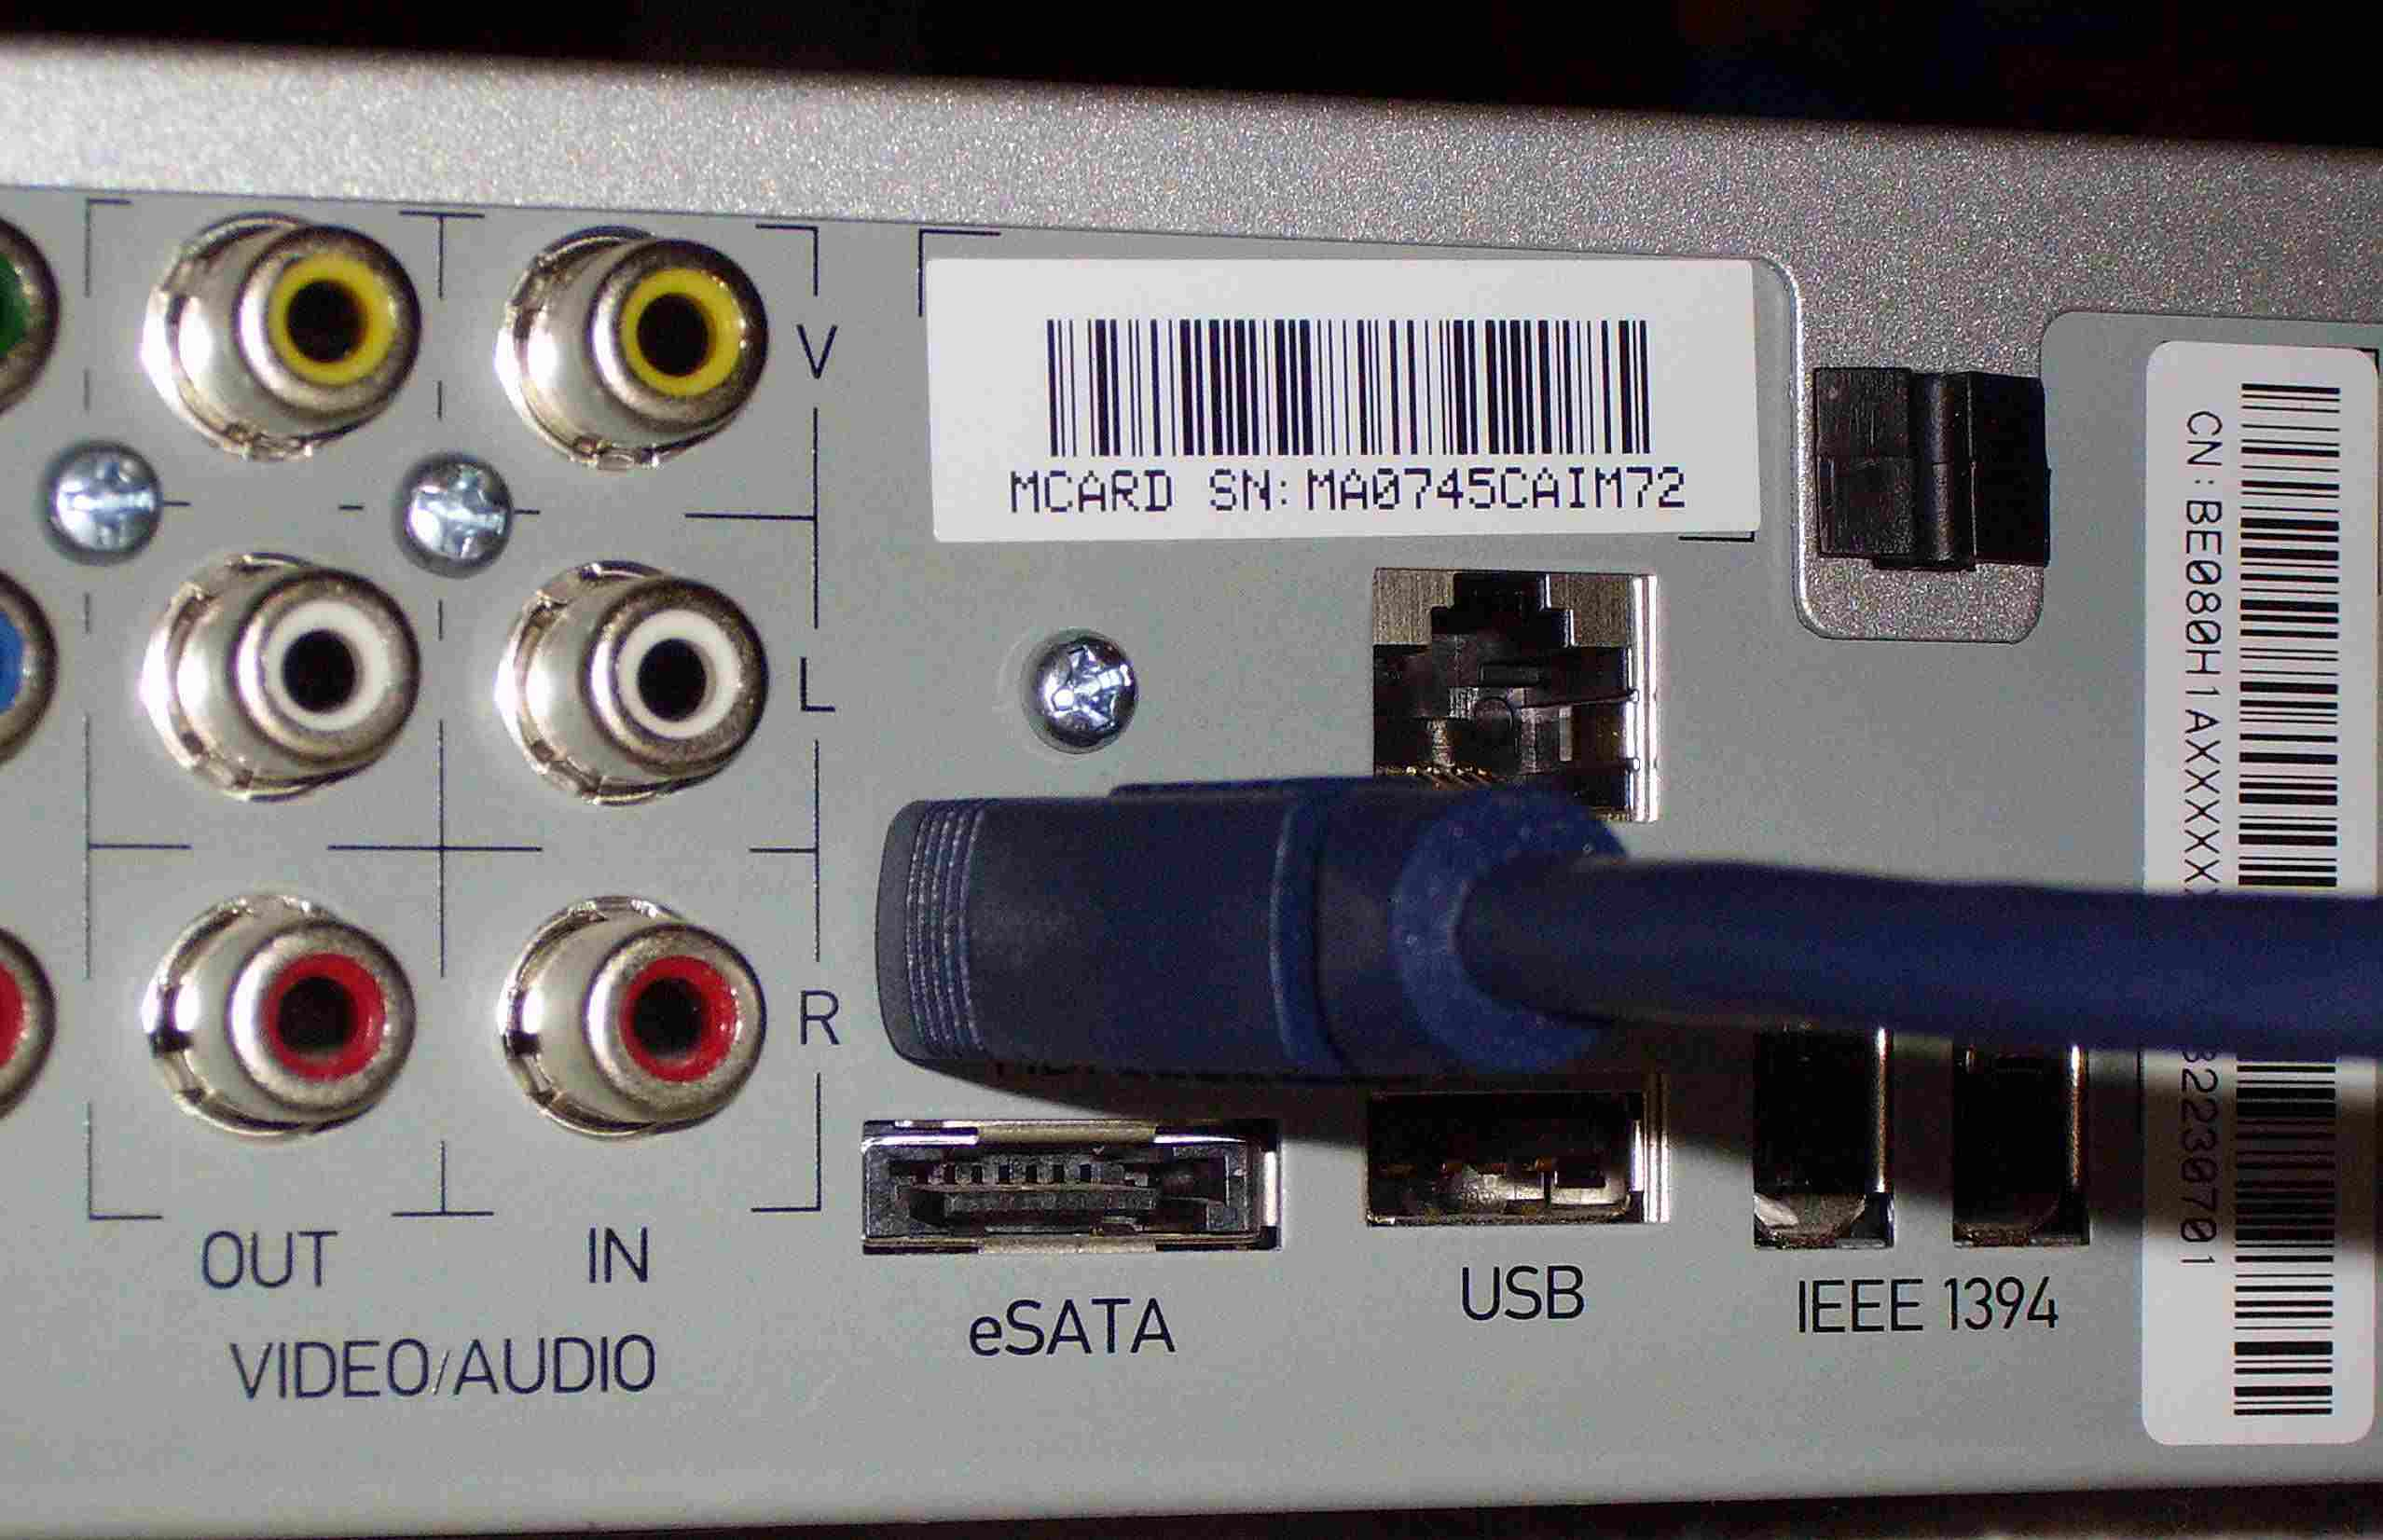 Connecting A Hd Video Source Using Hdmi Cable Wiring Plug One End Of The Into